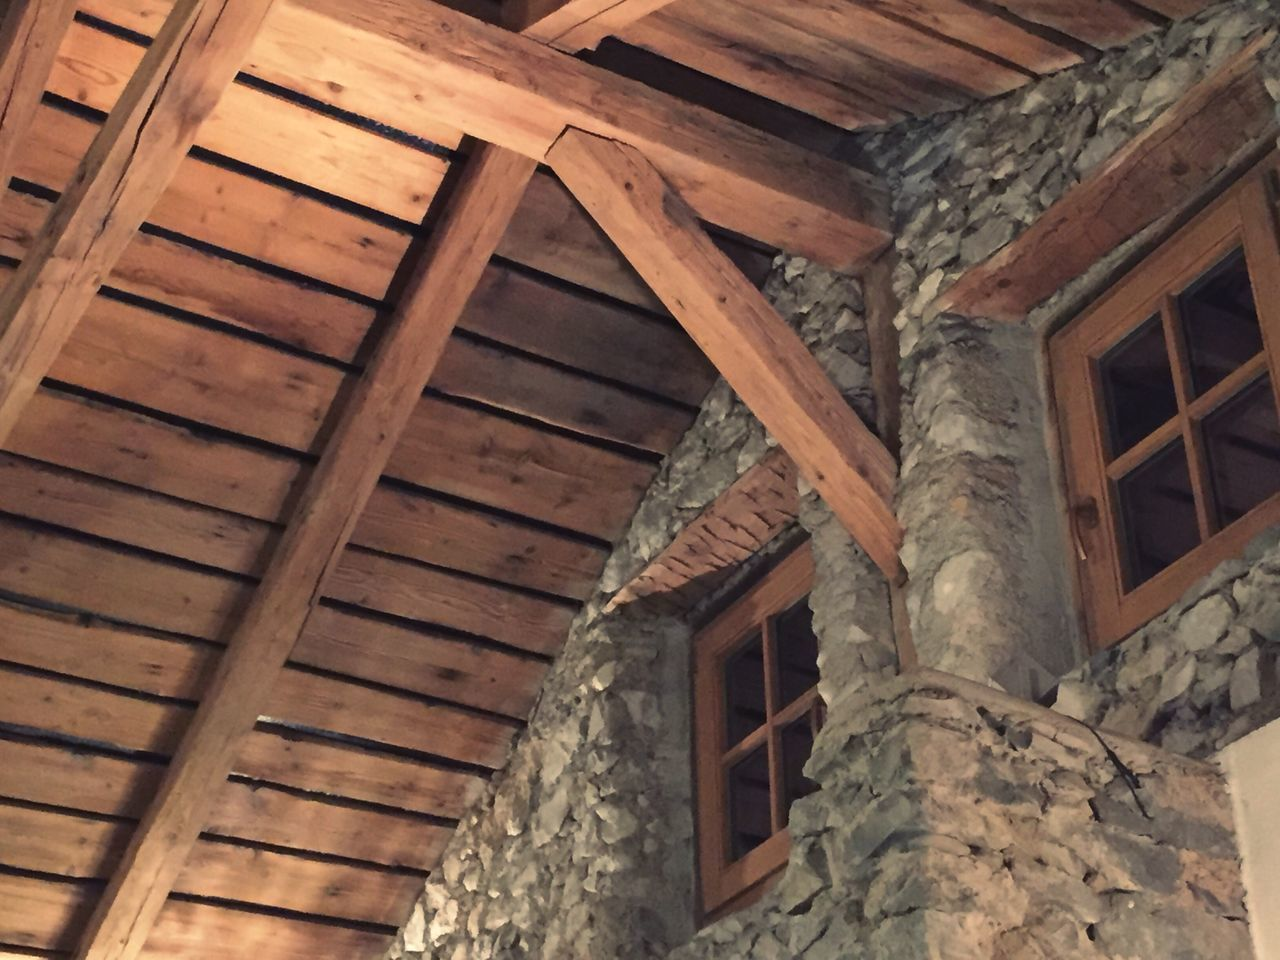 Austria Kaffebohne Wood - Material Architecture Built Structure Roof Beam Ceiling House Low Angle View Home Interior Roof Window No People Indoors  Residential Building Day Building Exterior